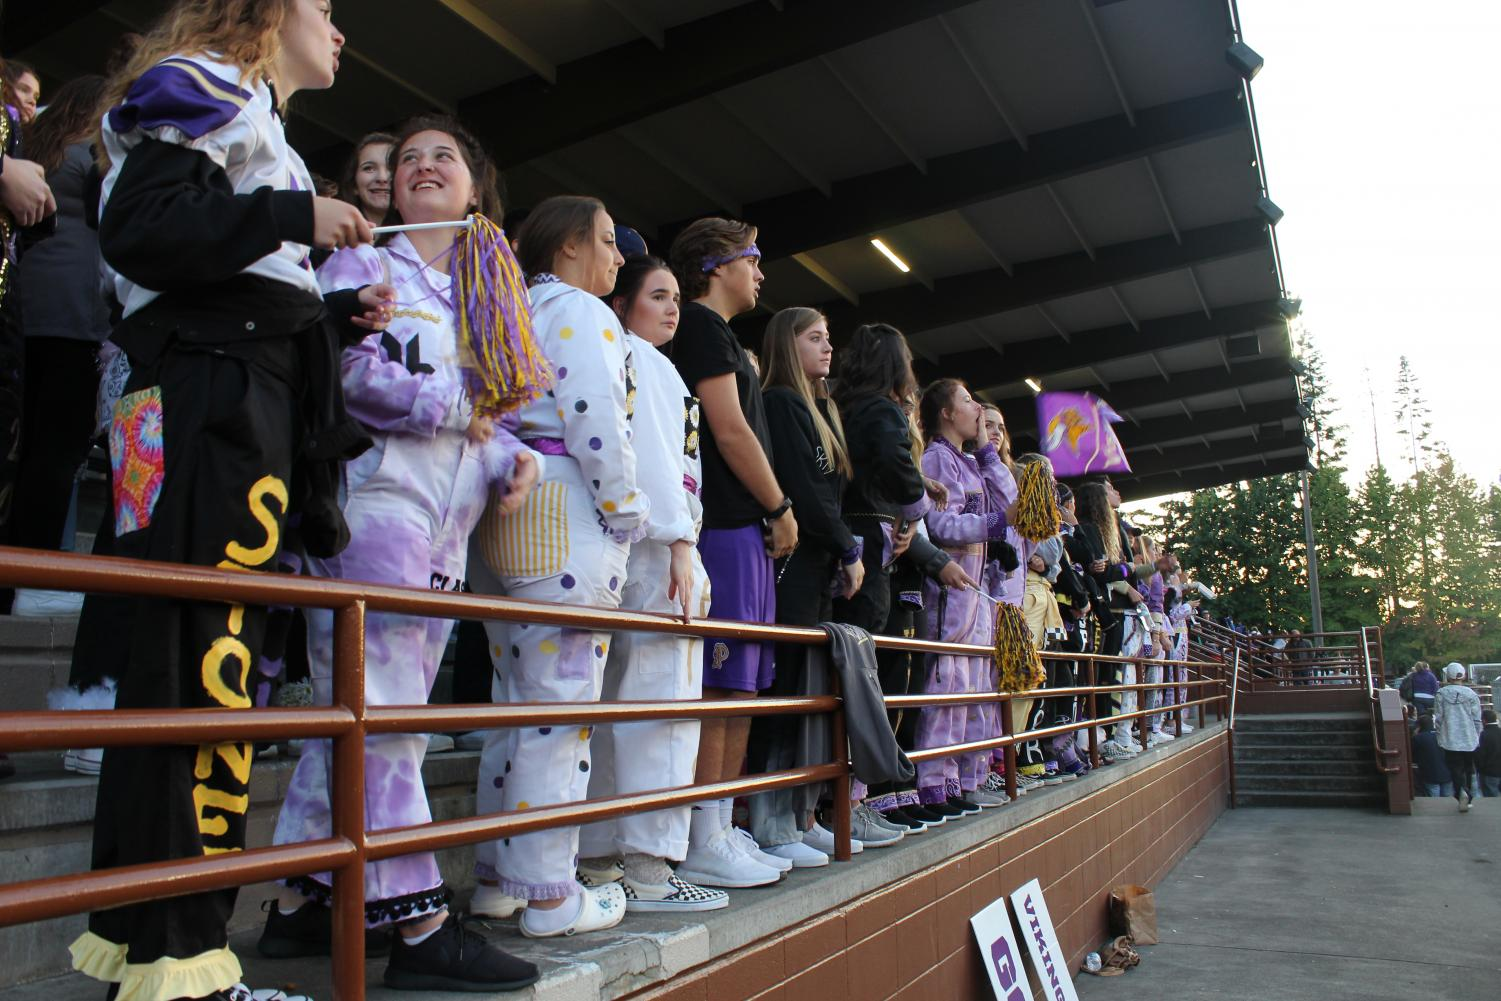 Students dominating their section with an abundance of people. South Kitsap only had a few fans in the stands, while Puyallup had hundreds.